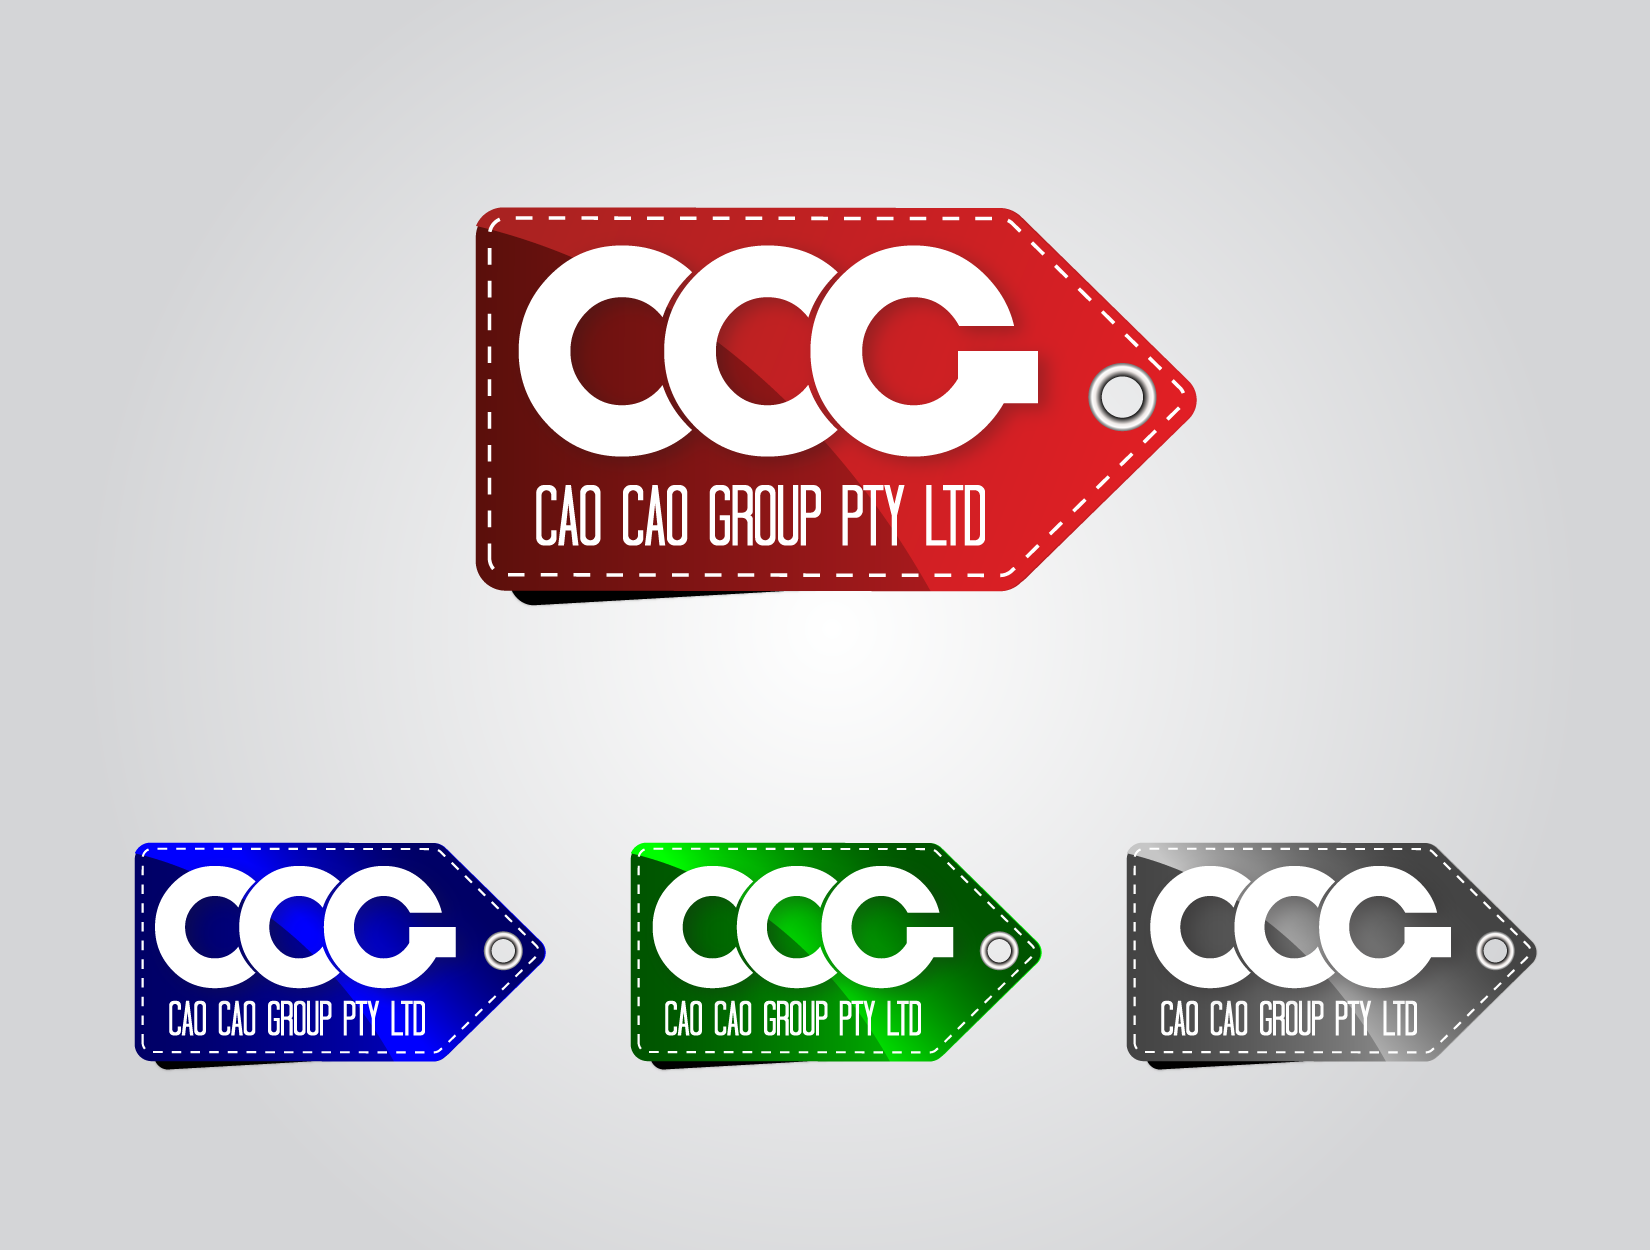 Logo Design by funkeekhan - Entry No. 178 in the Logo Design Contest cao cao group pty ltd Logo Design.